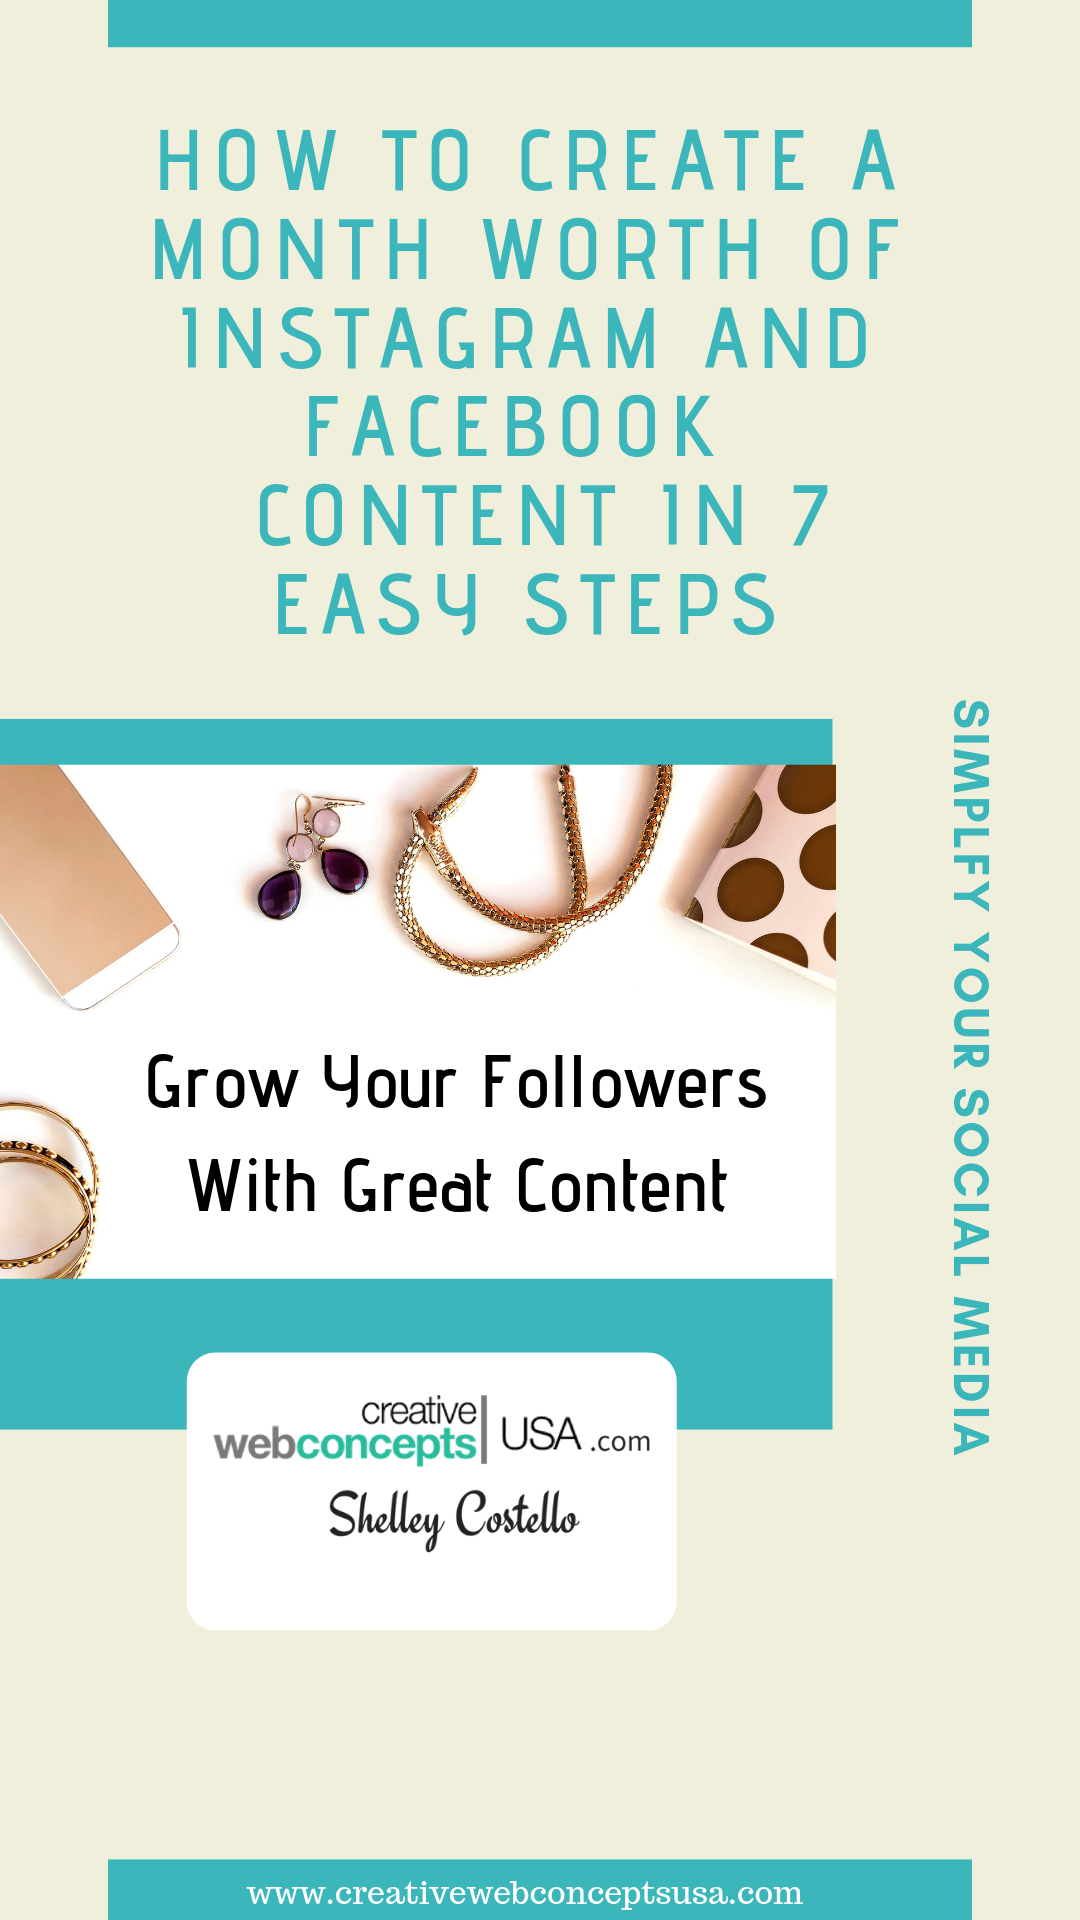 How To Create A Month Worth Of Instagram Content In 7 Easy Steps 1